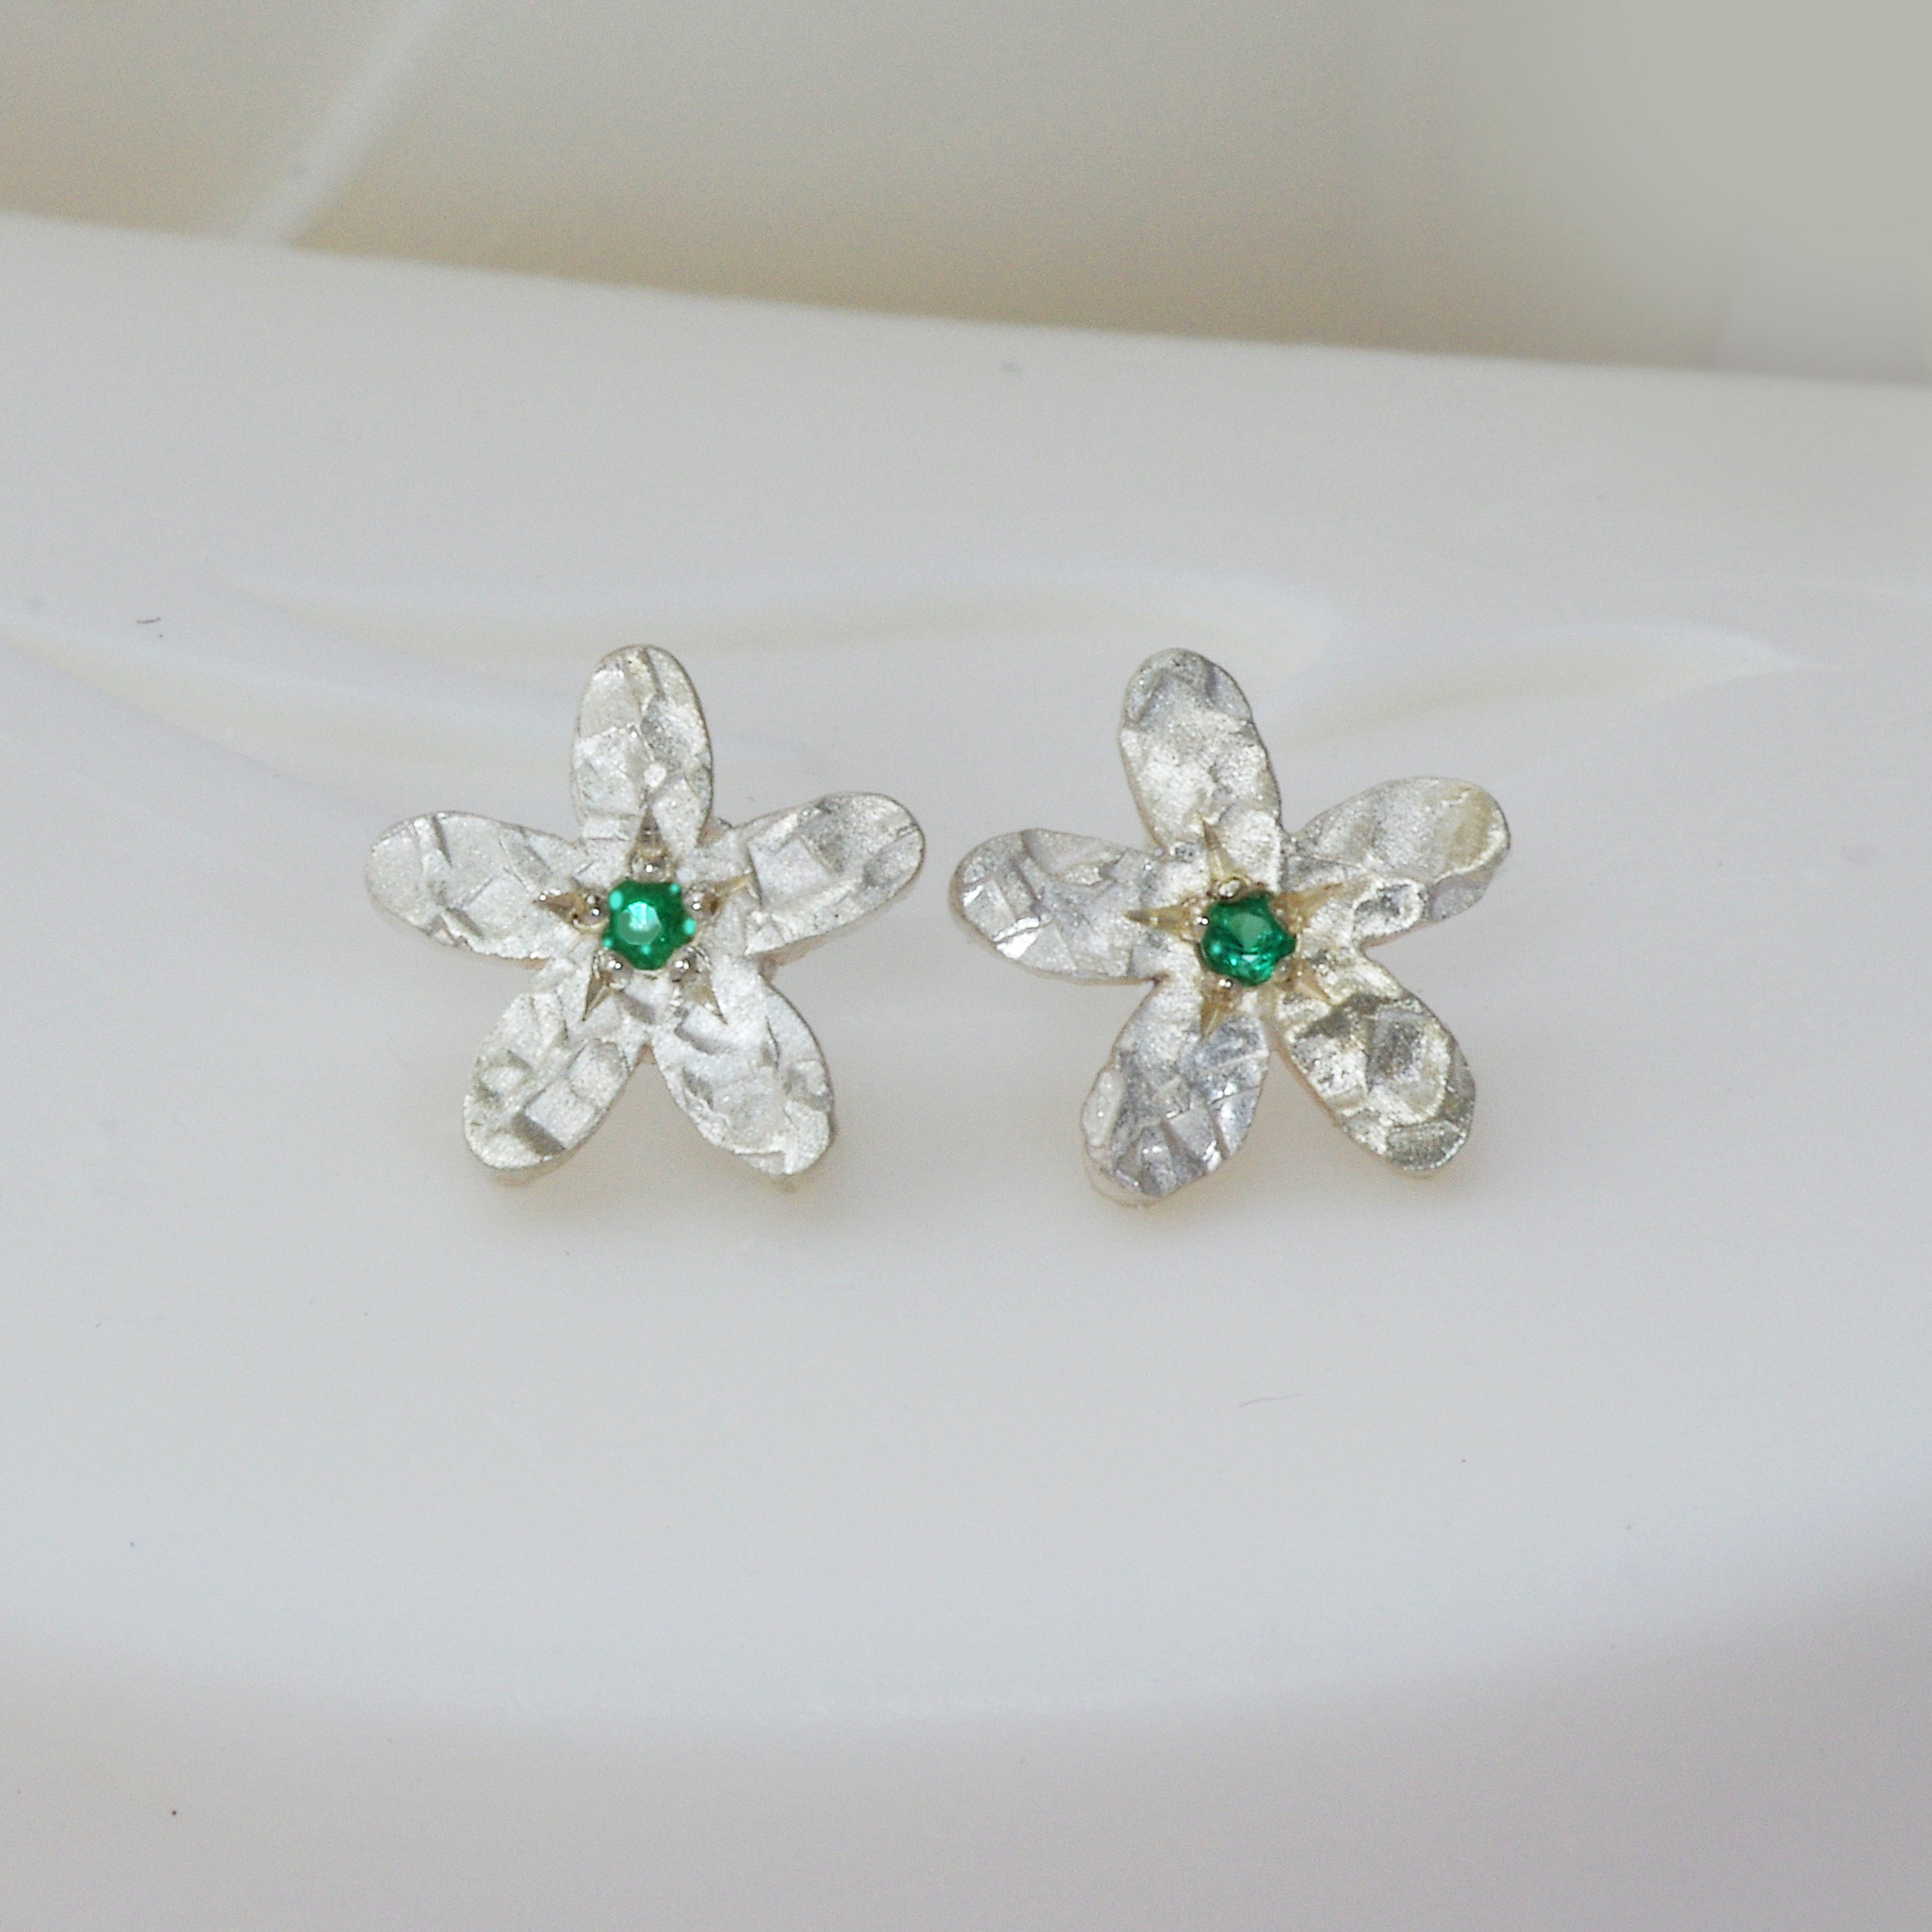 jewellery butter flower earrings lane antiques stud emerald vintage products